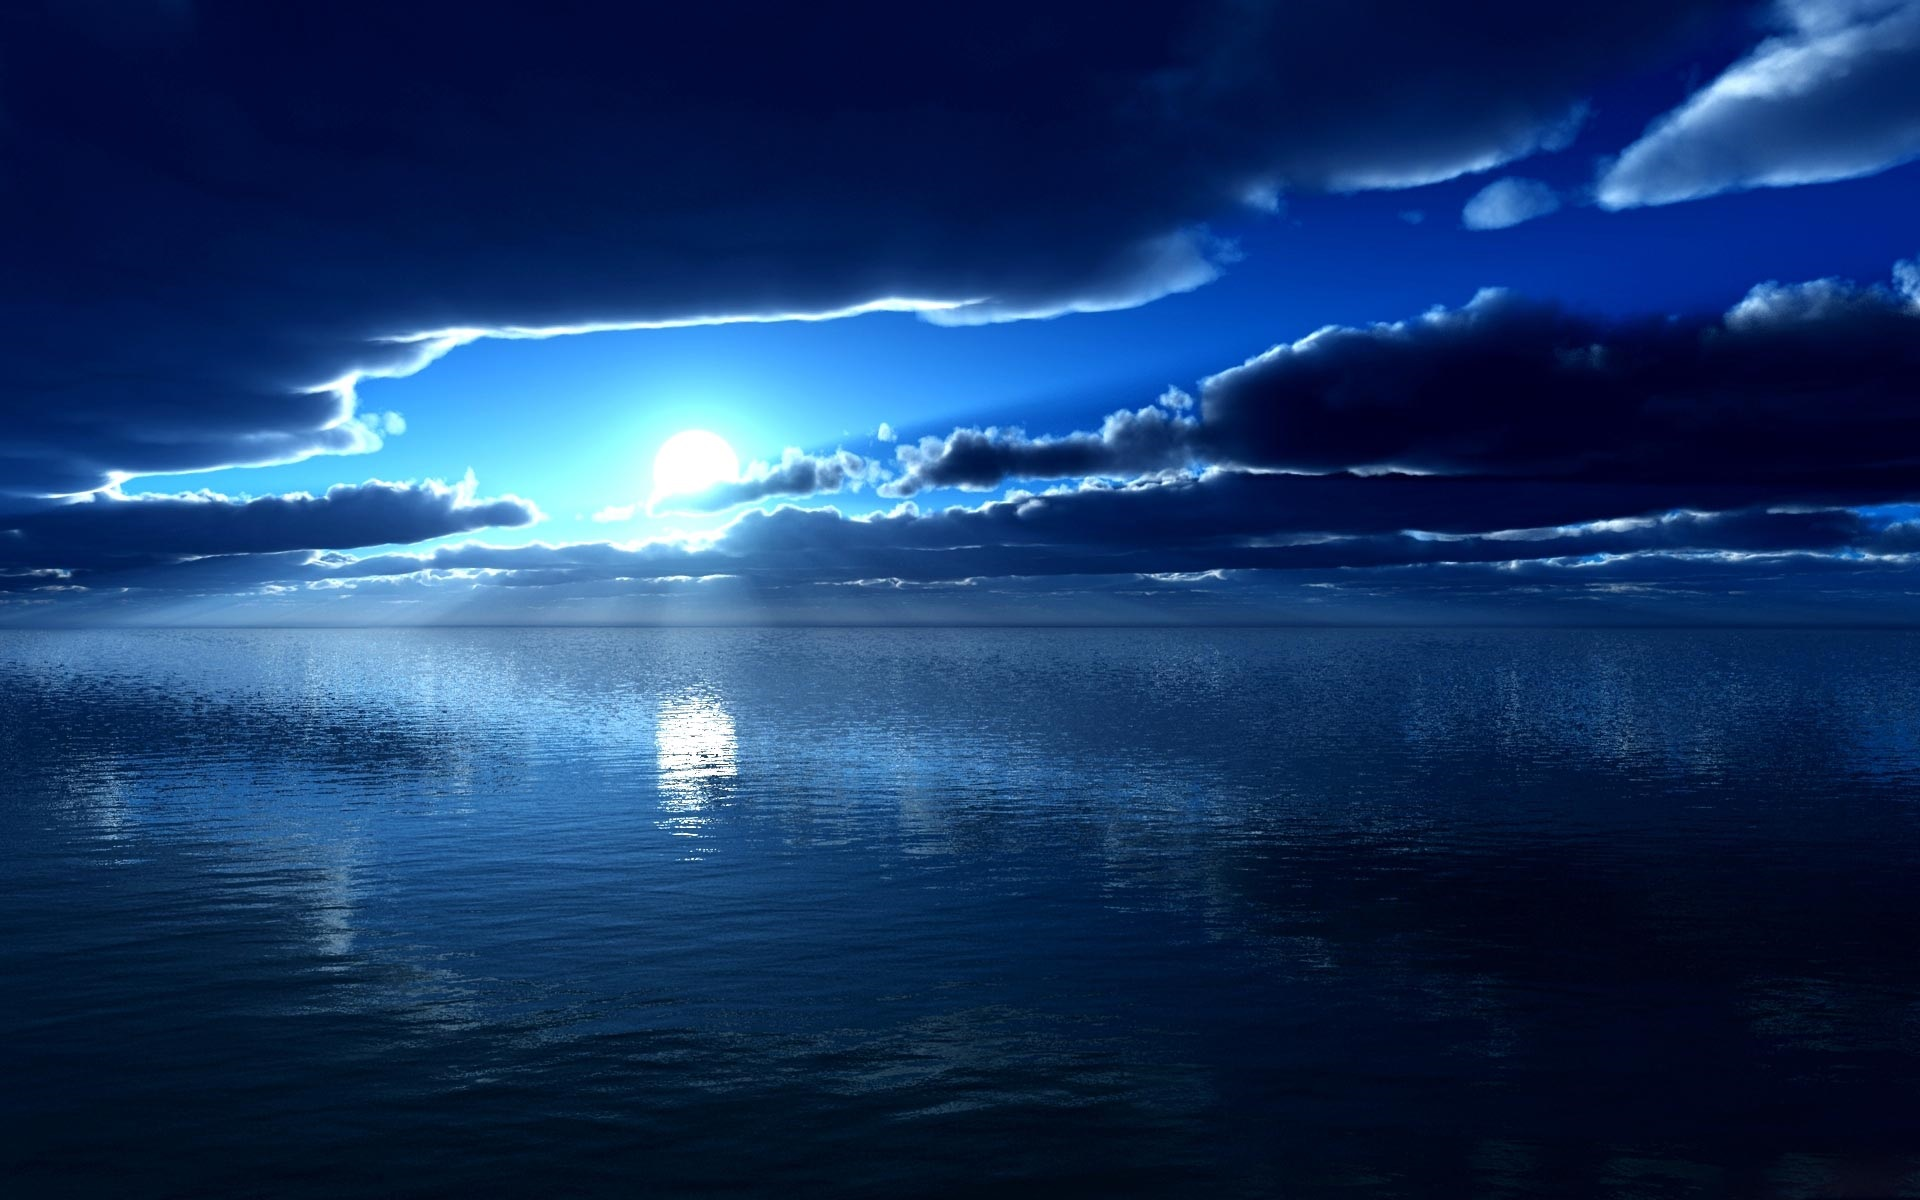 wallpaper sea, moon, blue, night, clouds 1920x1200 hd picture, image